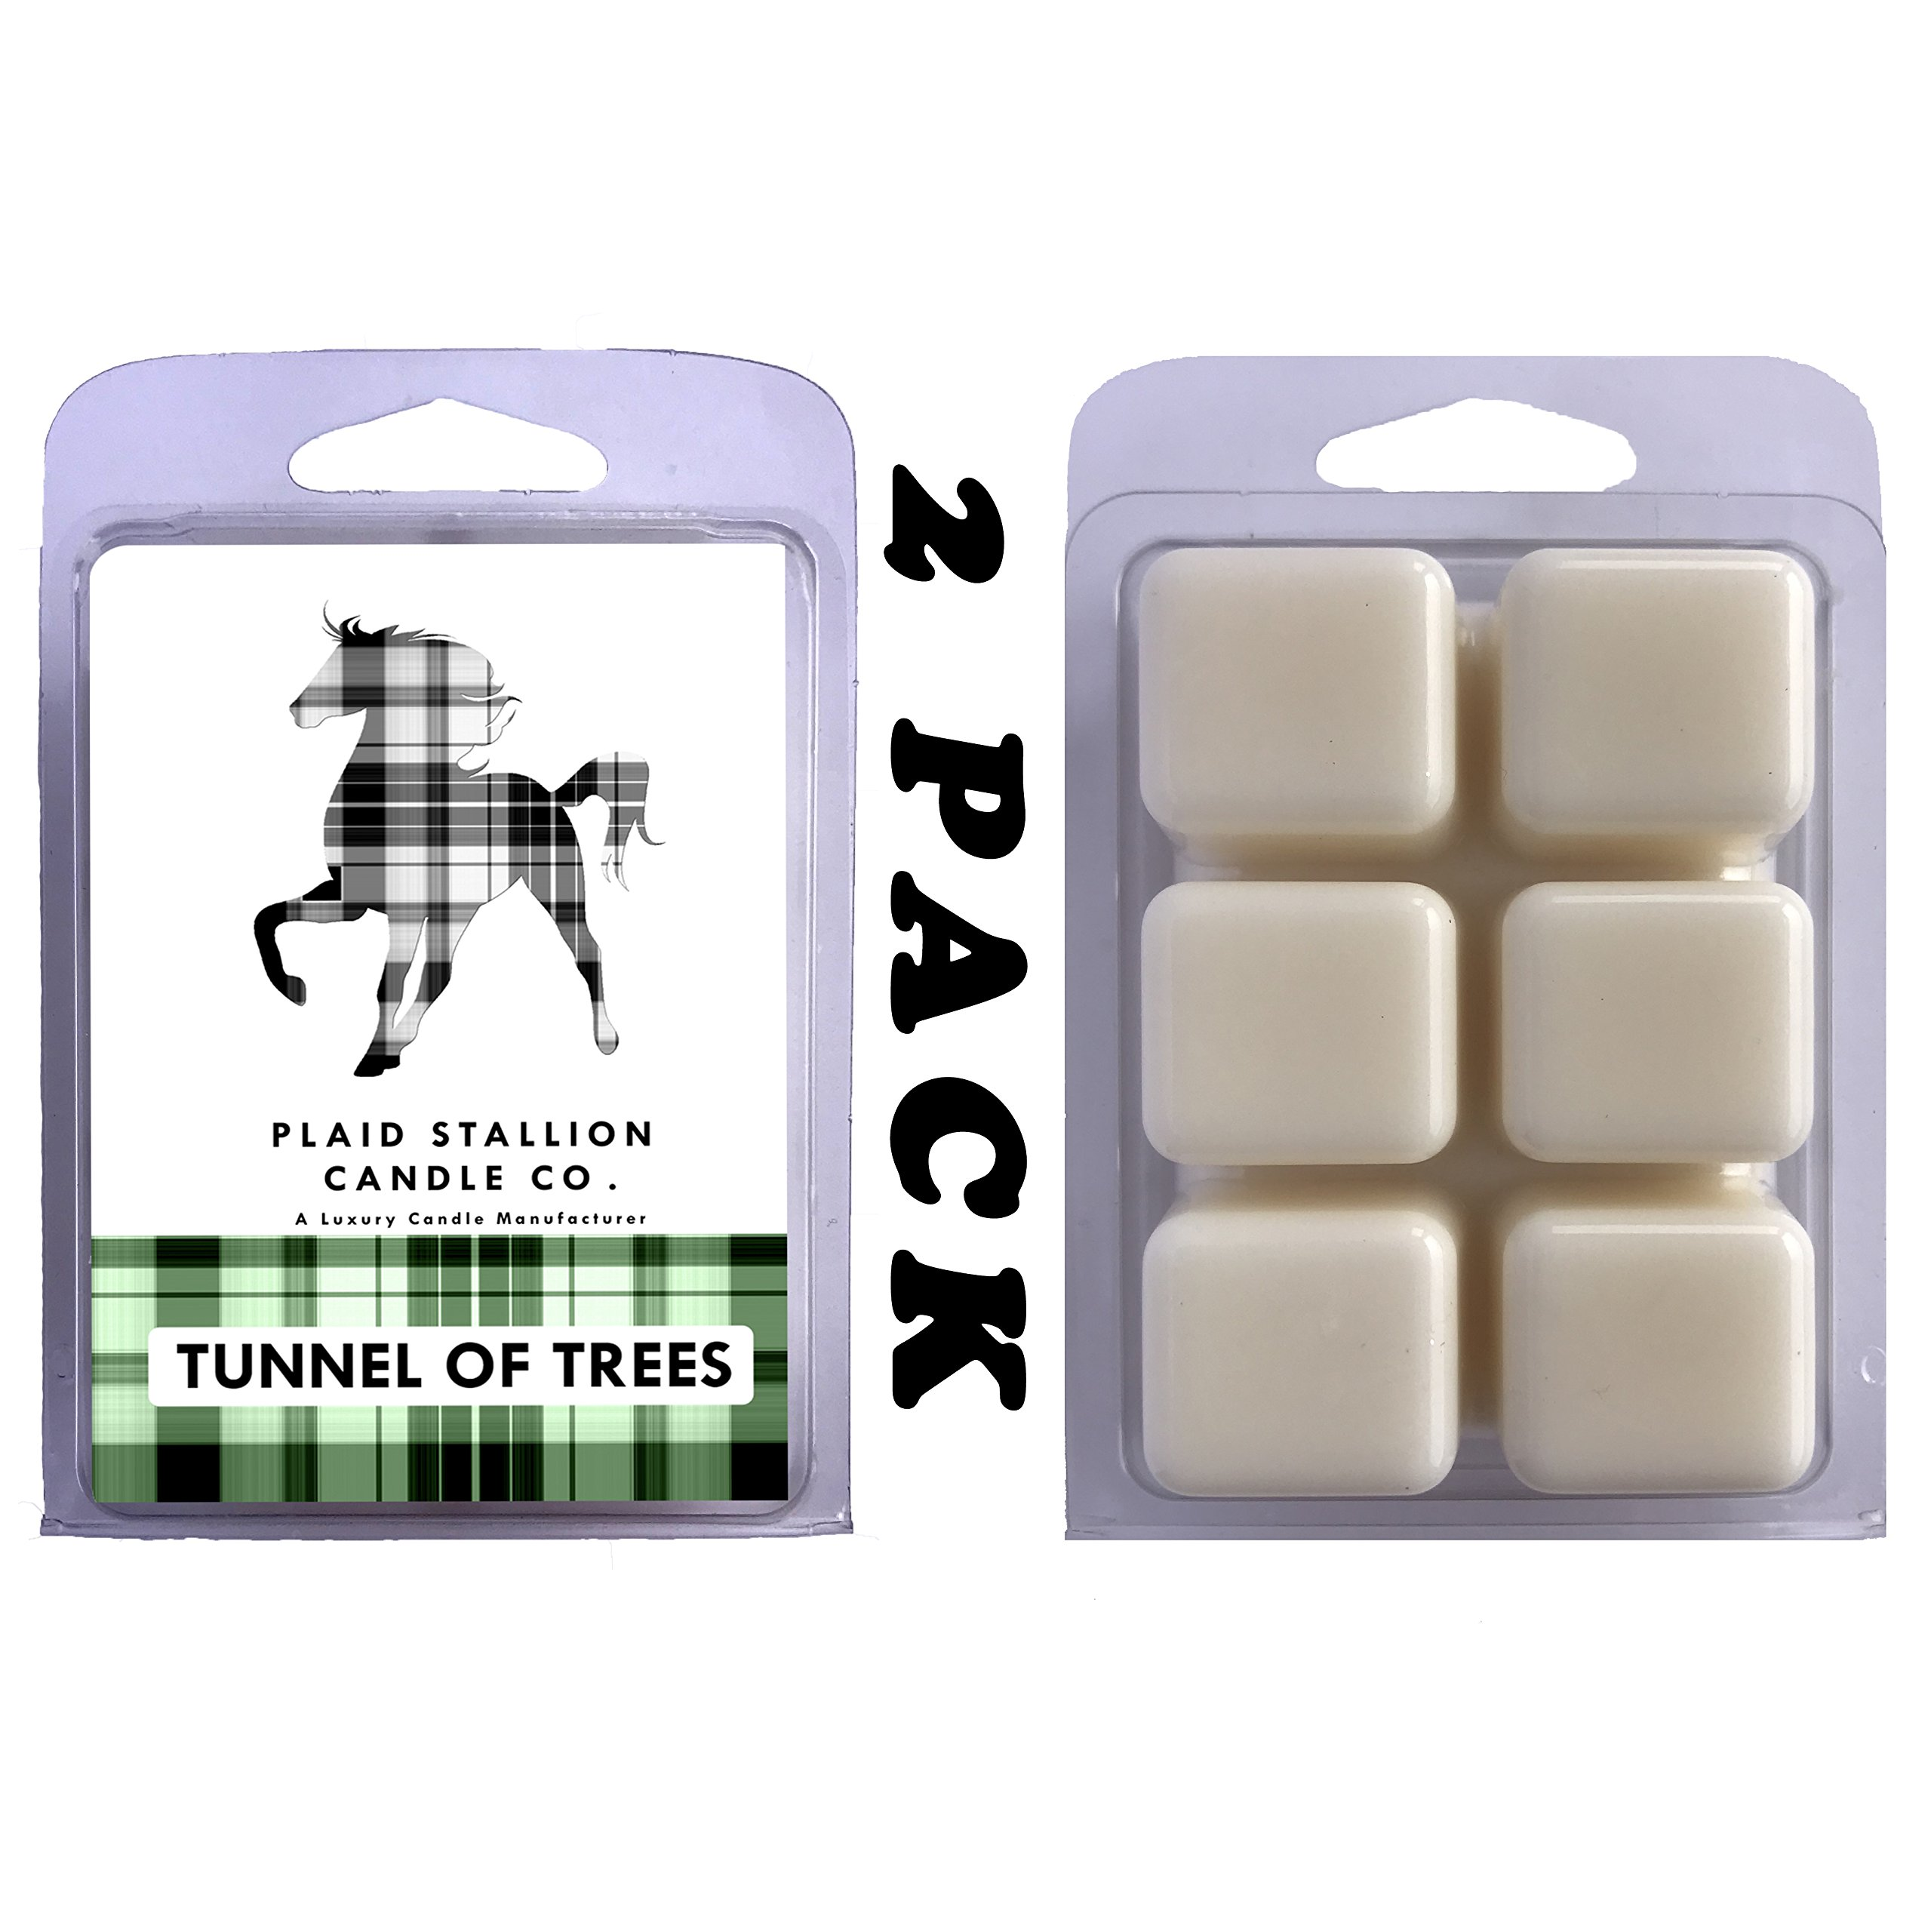 Plaid Stallion Scented Candle Wax Melts | Woods, Cedar, Pine, Trees, Ocean Scent (Tunnel of Trees) | 12 Flameless Candle Wax Cubes, 6.4 Ounces in 2 x 6-Packs